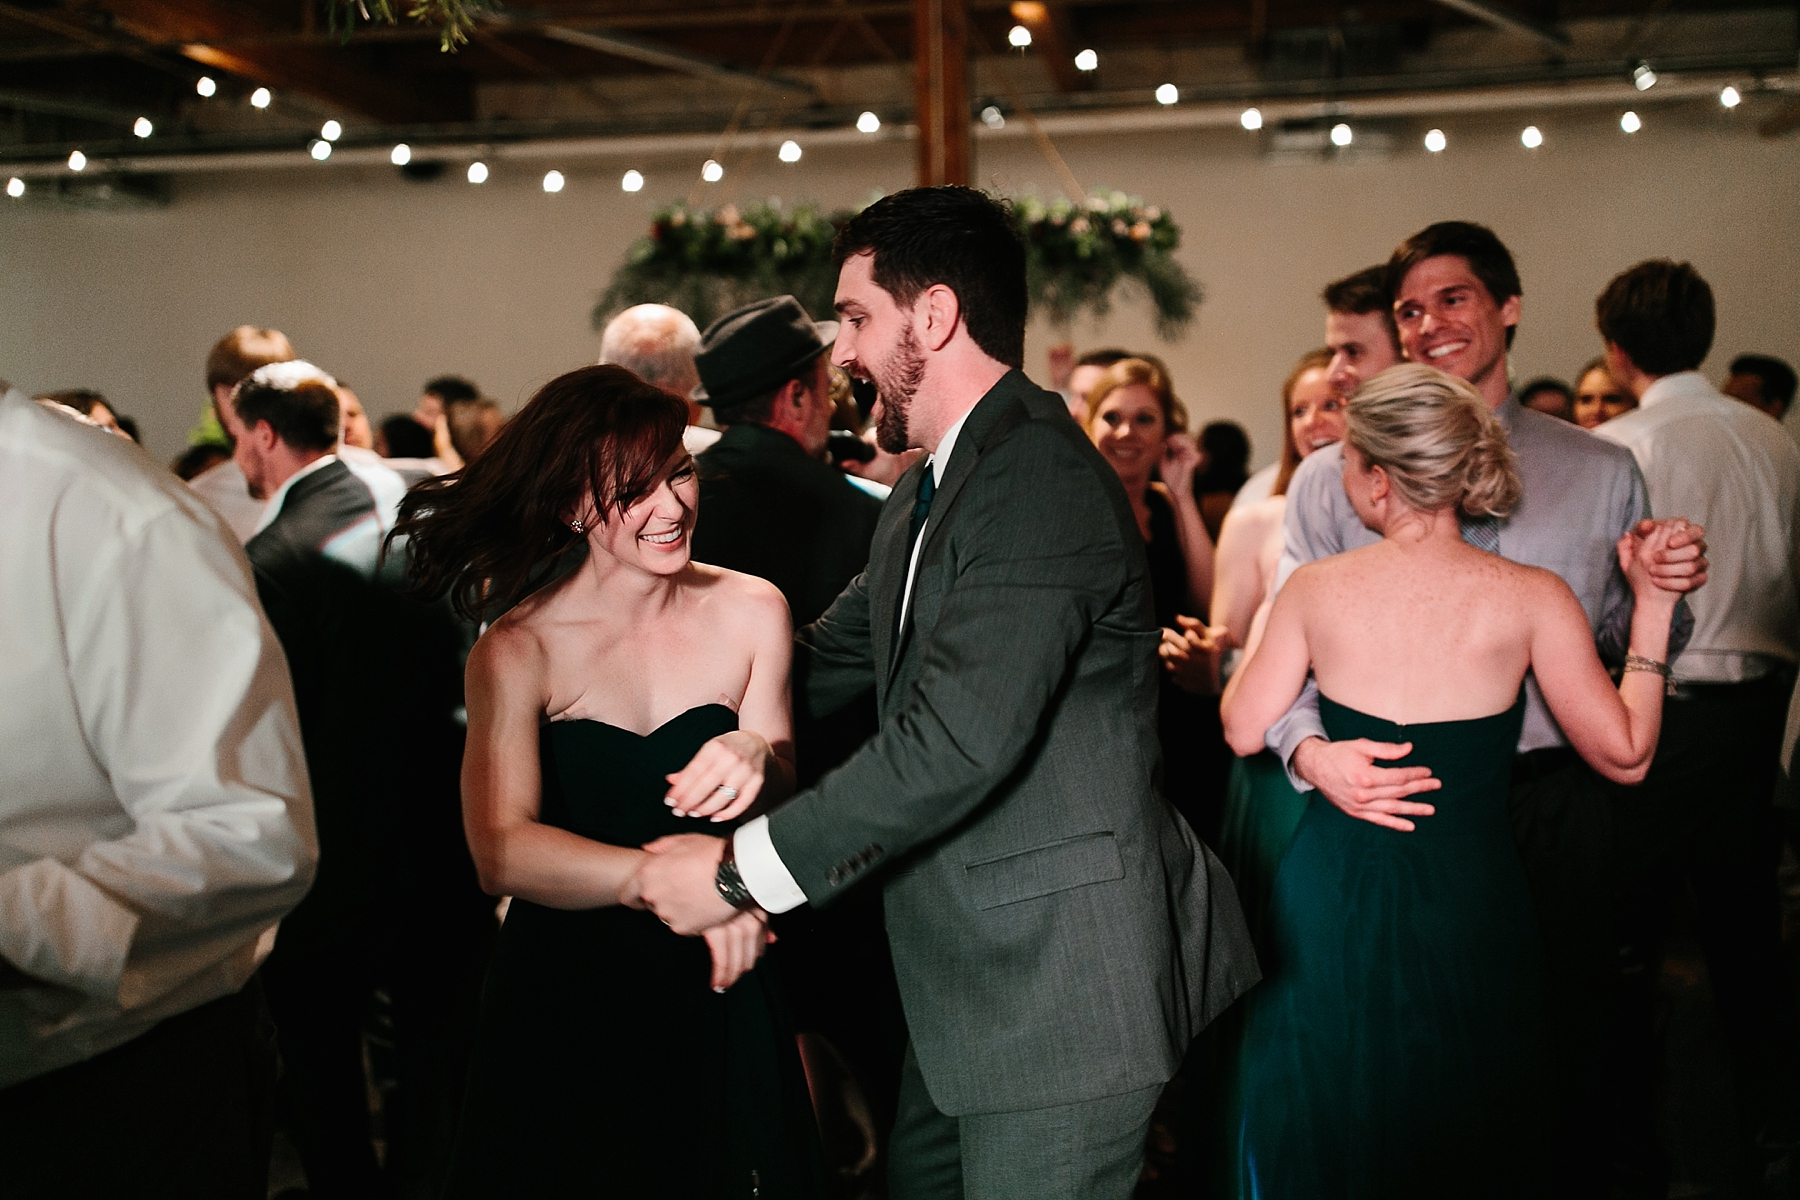 Emily + Caleb _ an elegant, intentional, industrial style wedding with navy + gold accents at 6500 in Dallas, TX by North Texas Wedding Photographer Rachel Meagan Photography _ 155